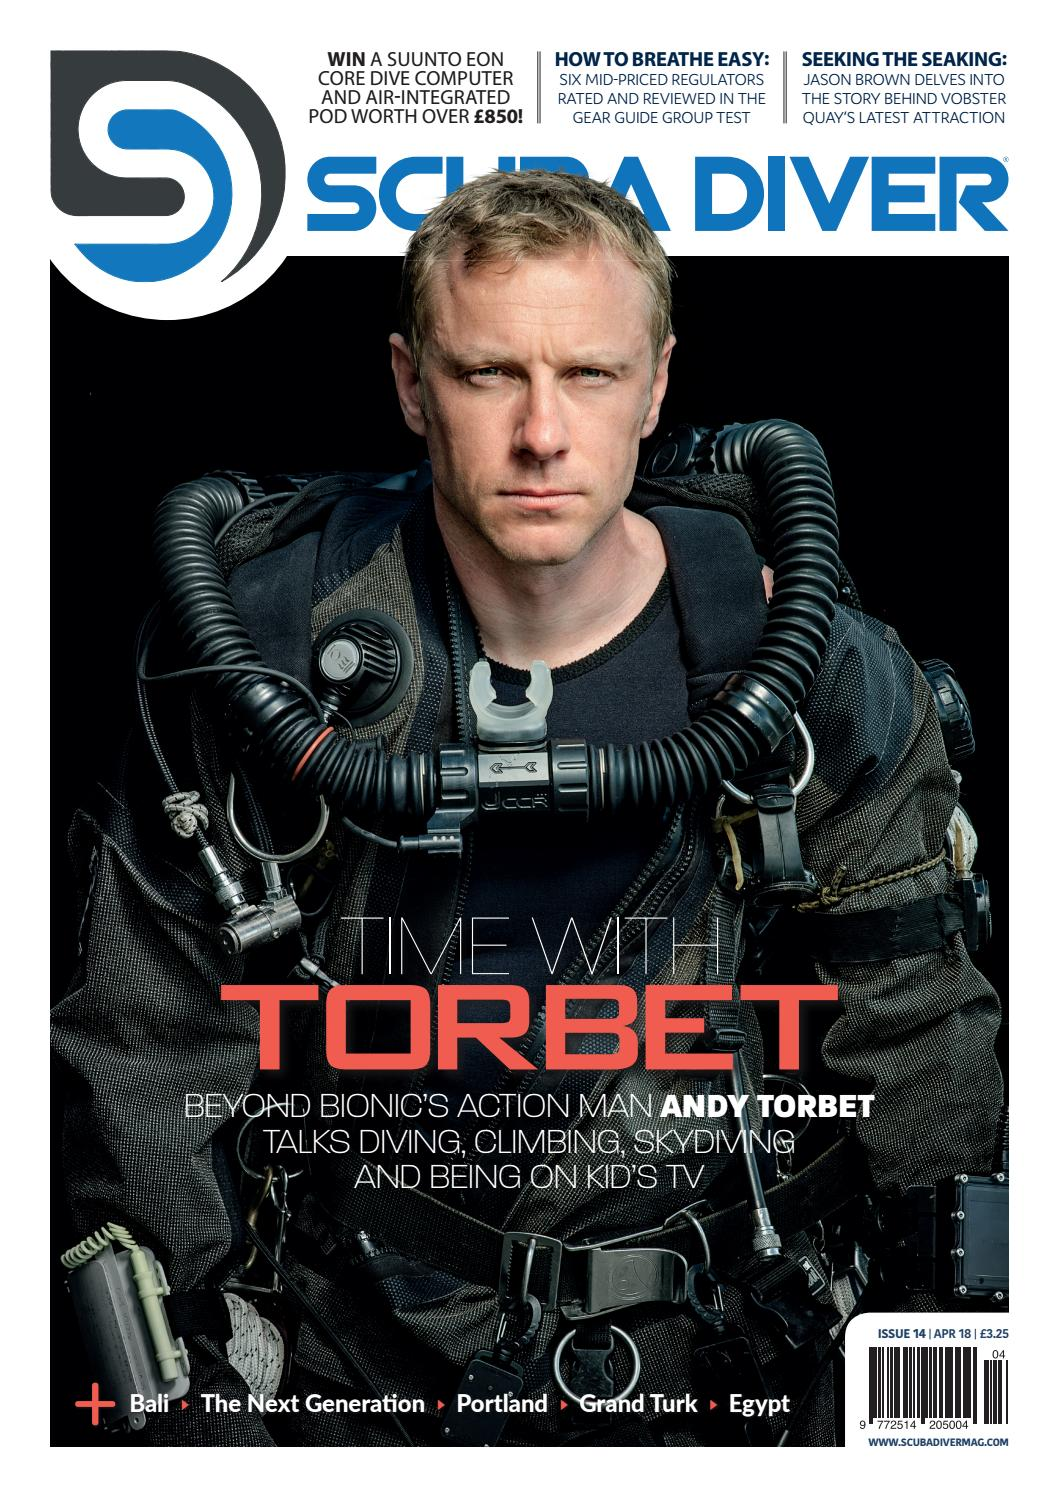 Scuba Diver UK April 18 - Issue 14 by scubadivermag - issuu 07adc3762